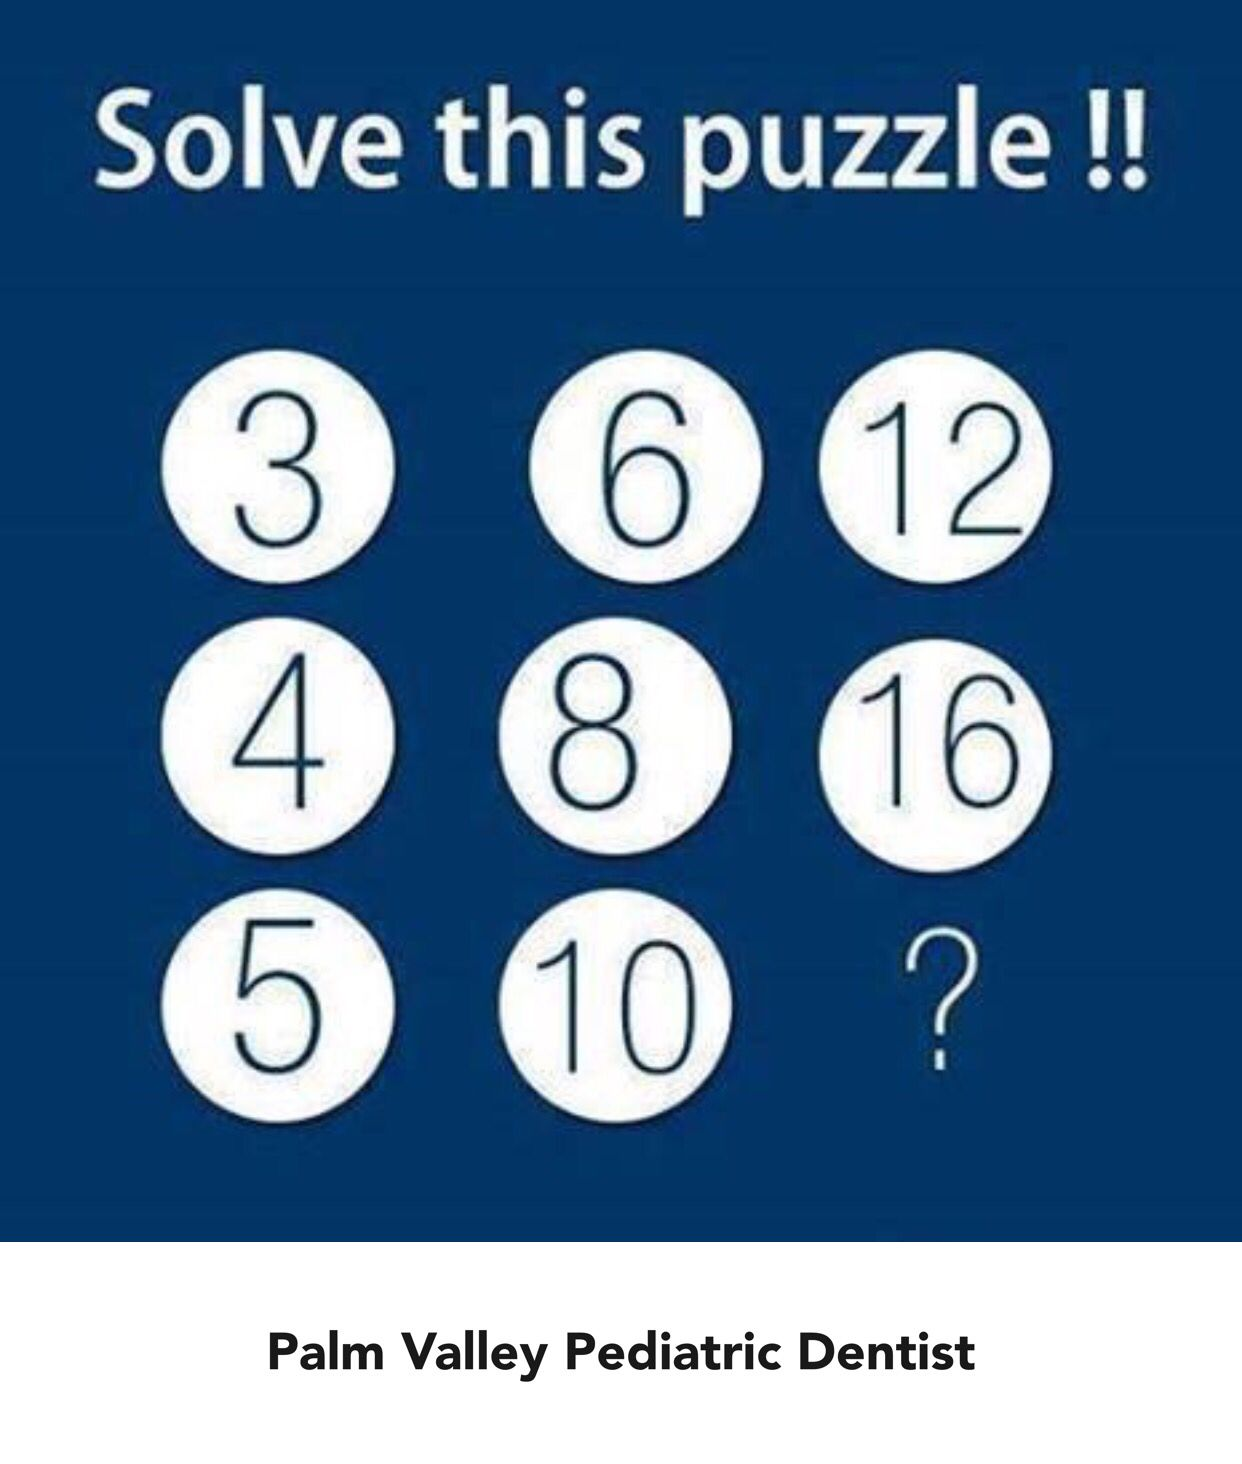 Can You Solve This Puzzle Palm Valley Pediatric